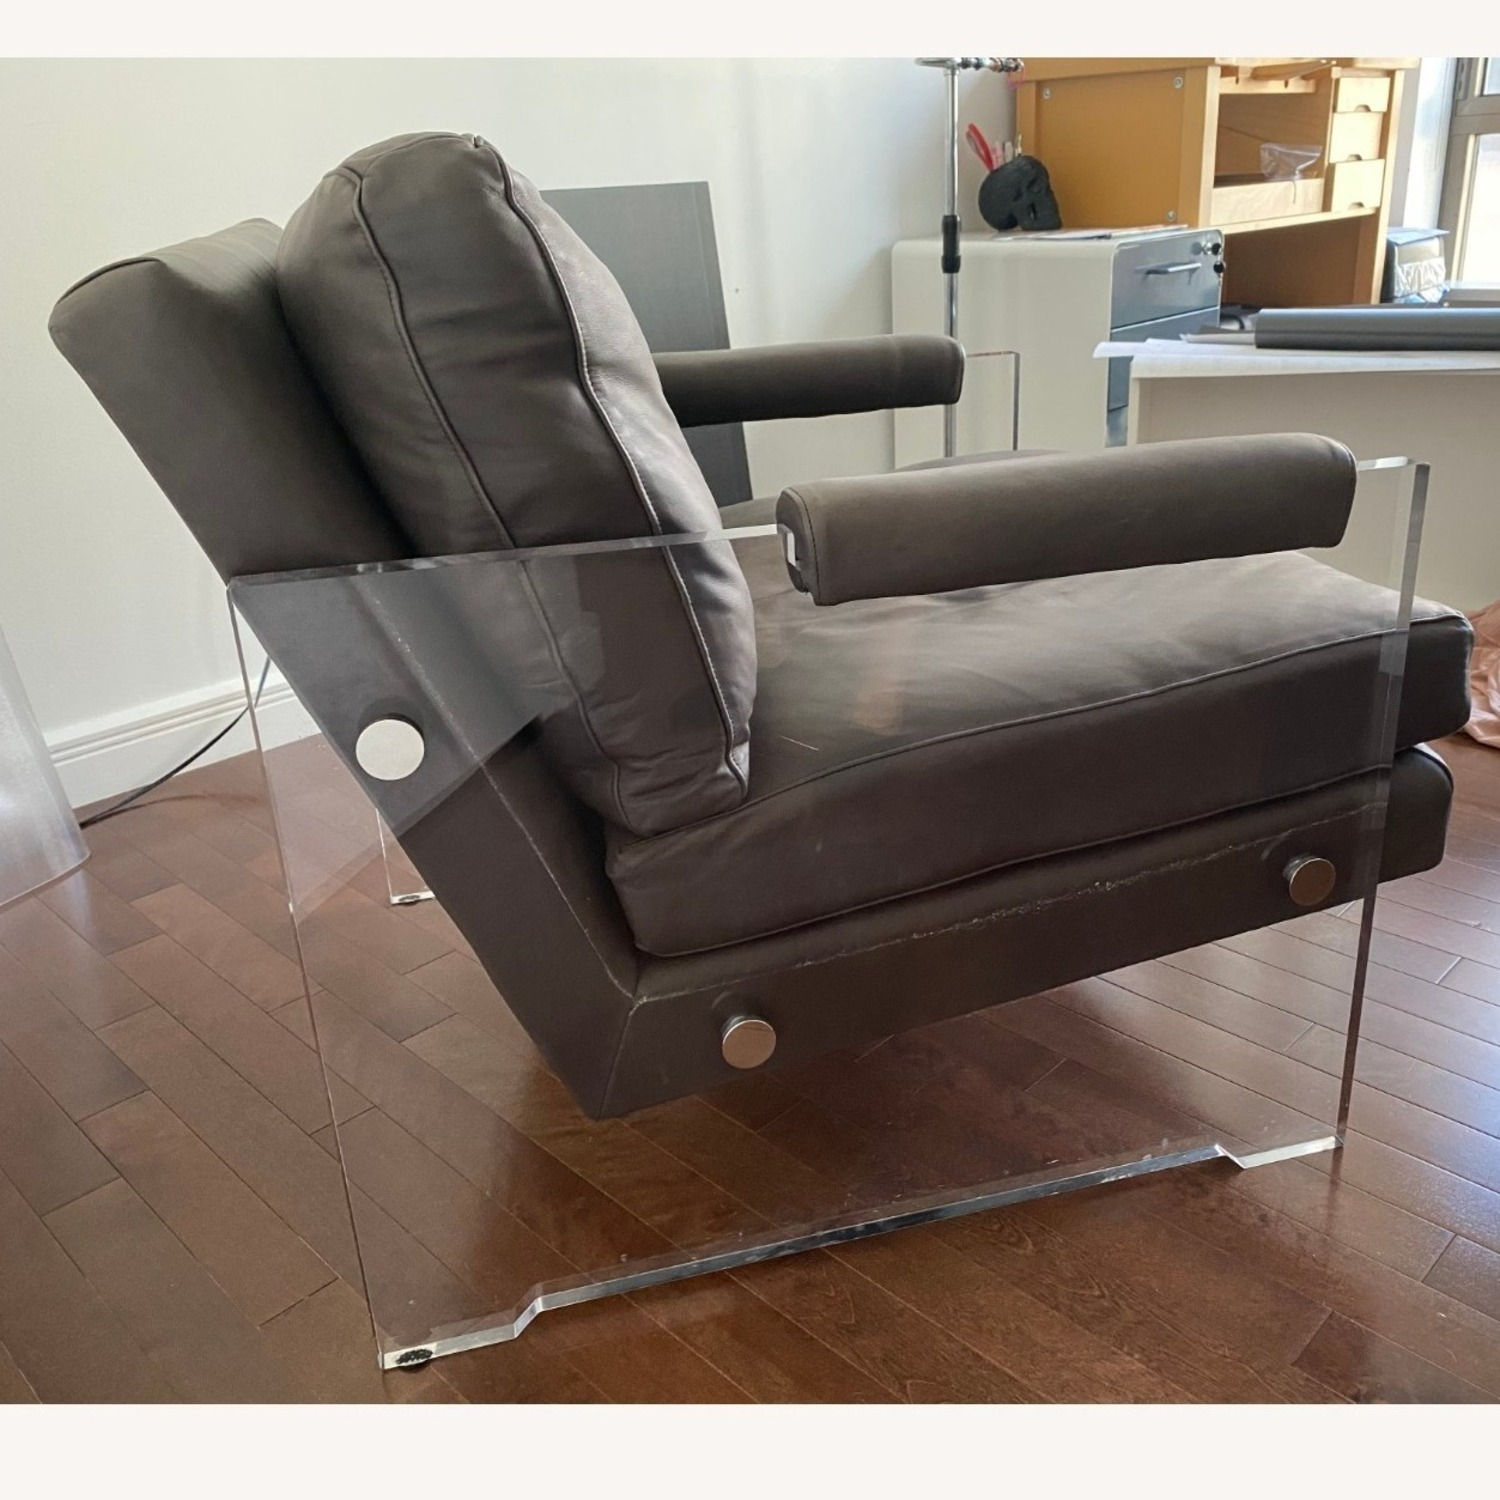 Restoration Hardware Leather Luca Chair - image-14